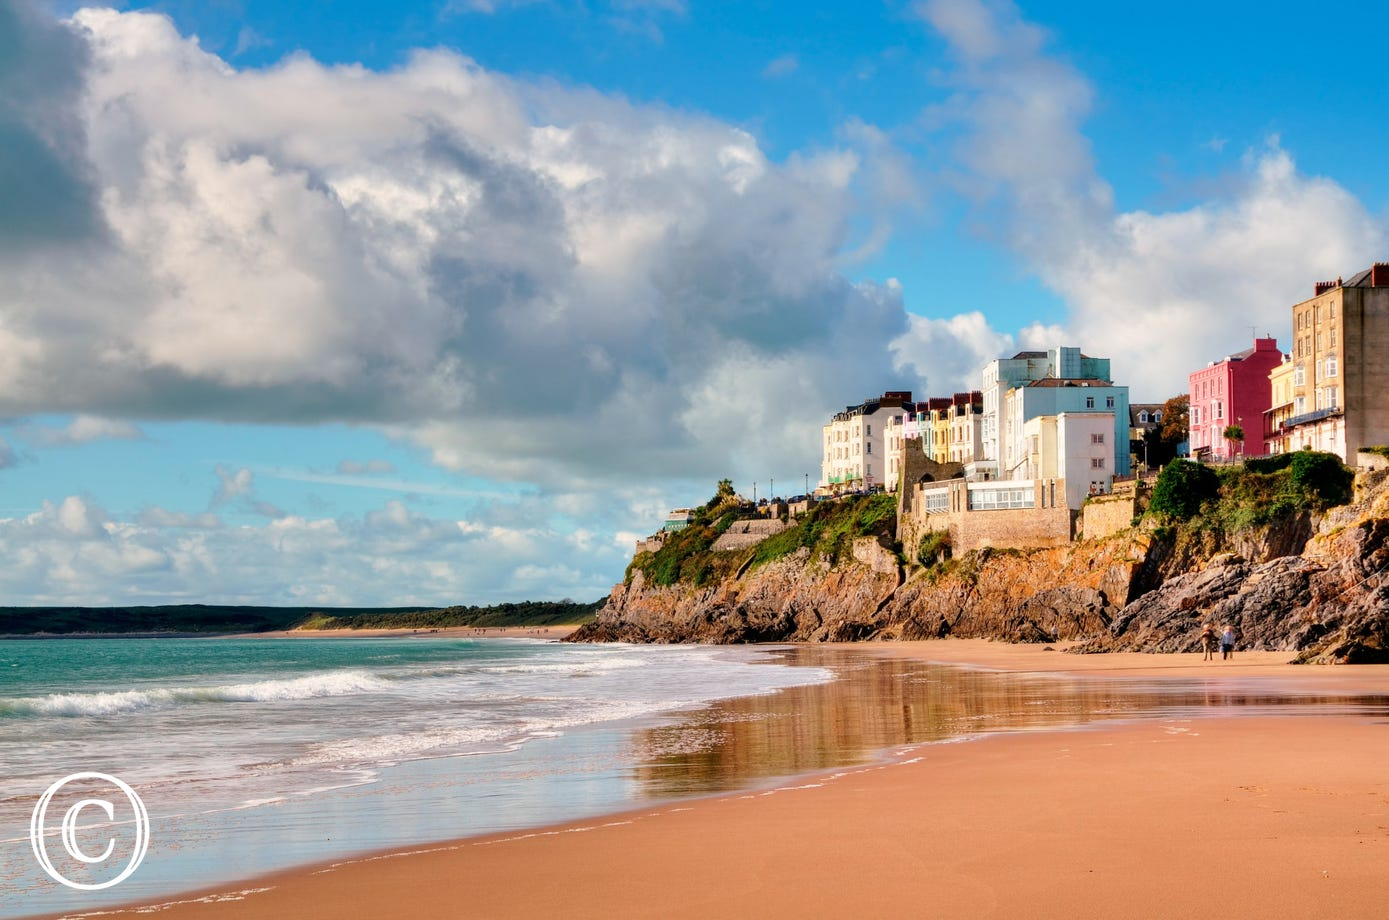 A photo of one of the beaches in Tenby